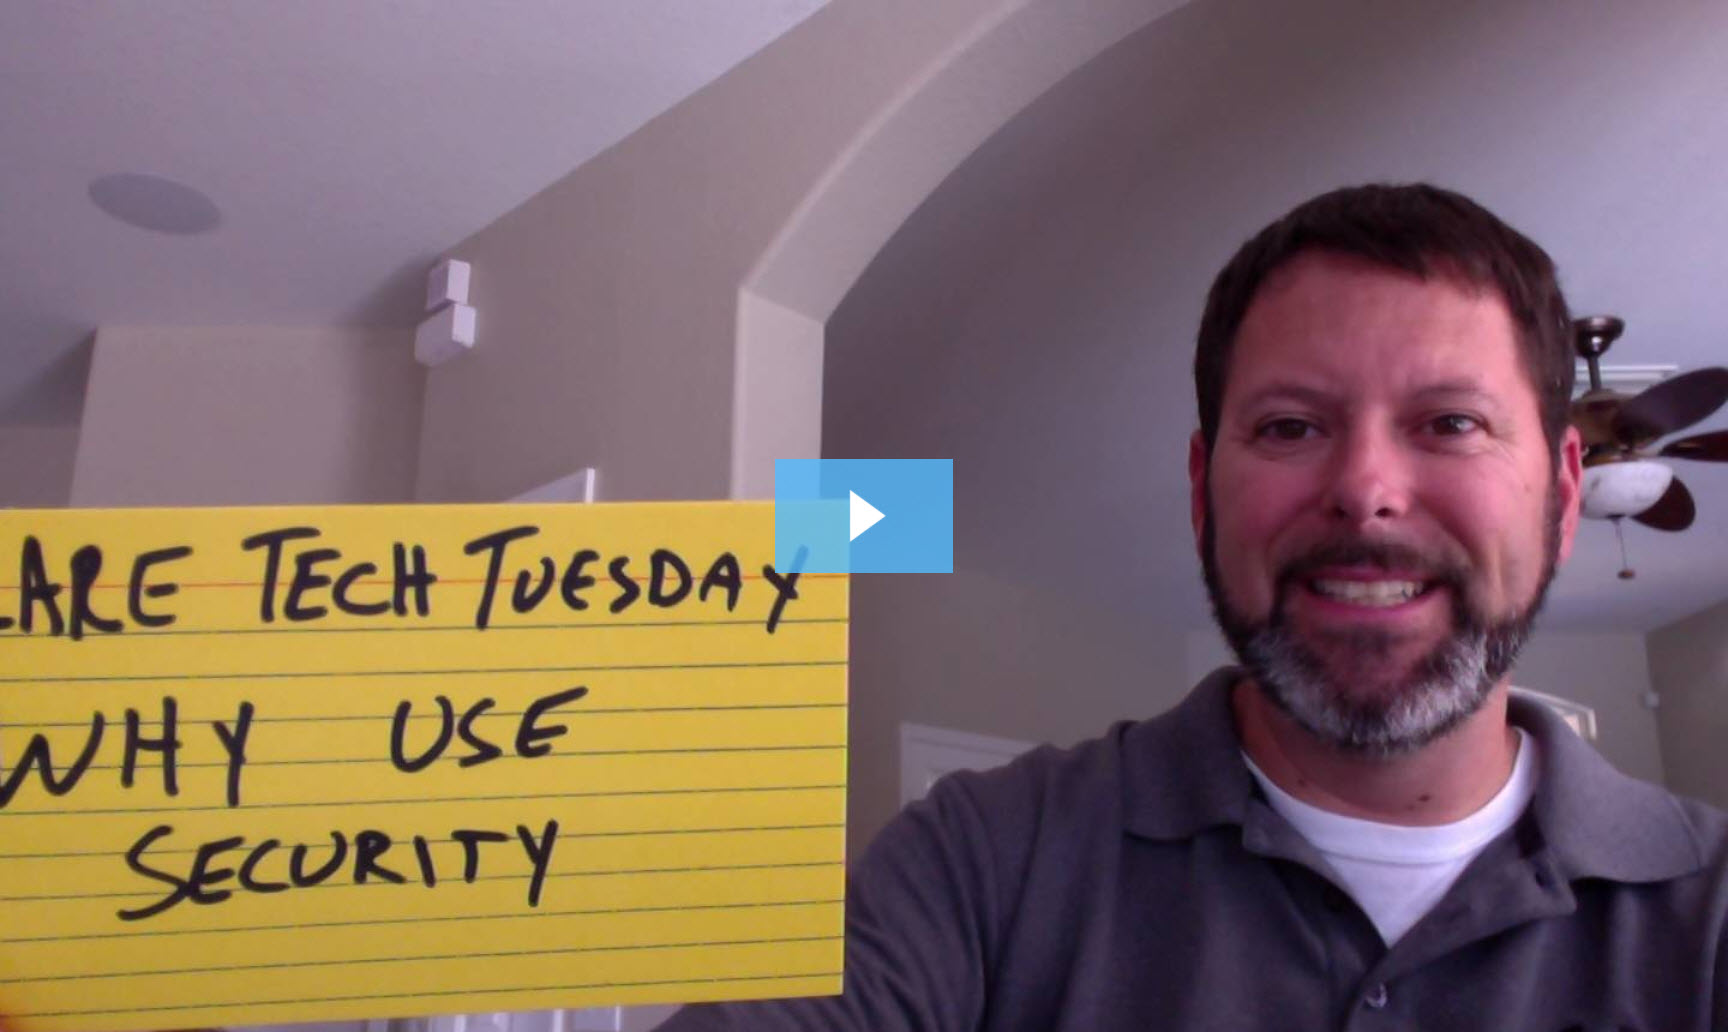 Clare Tech Tuesday: Why Use Security